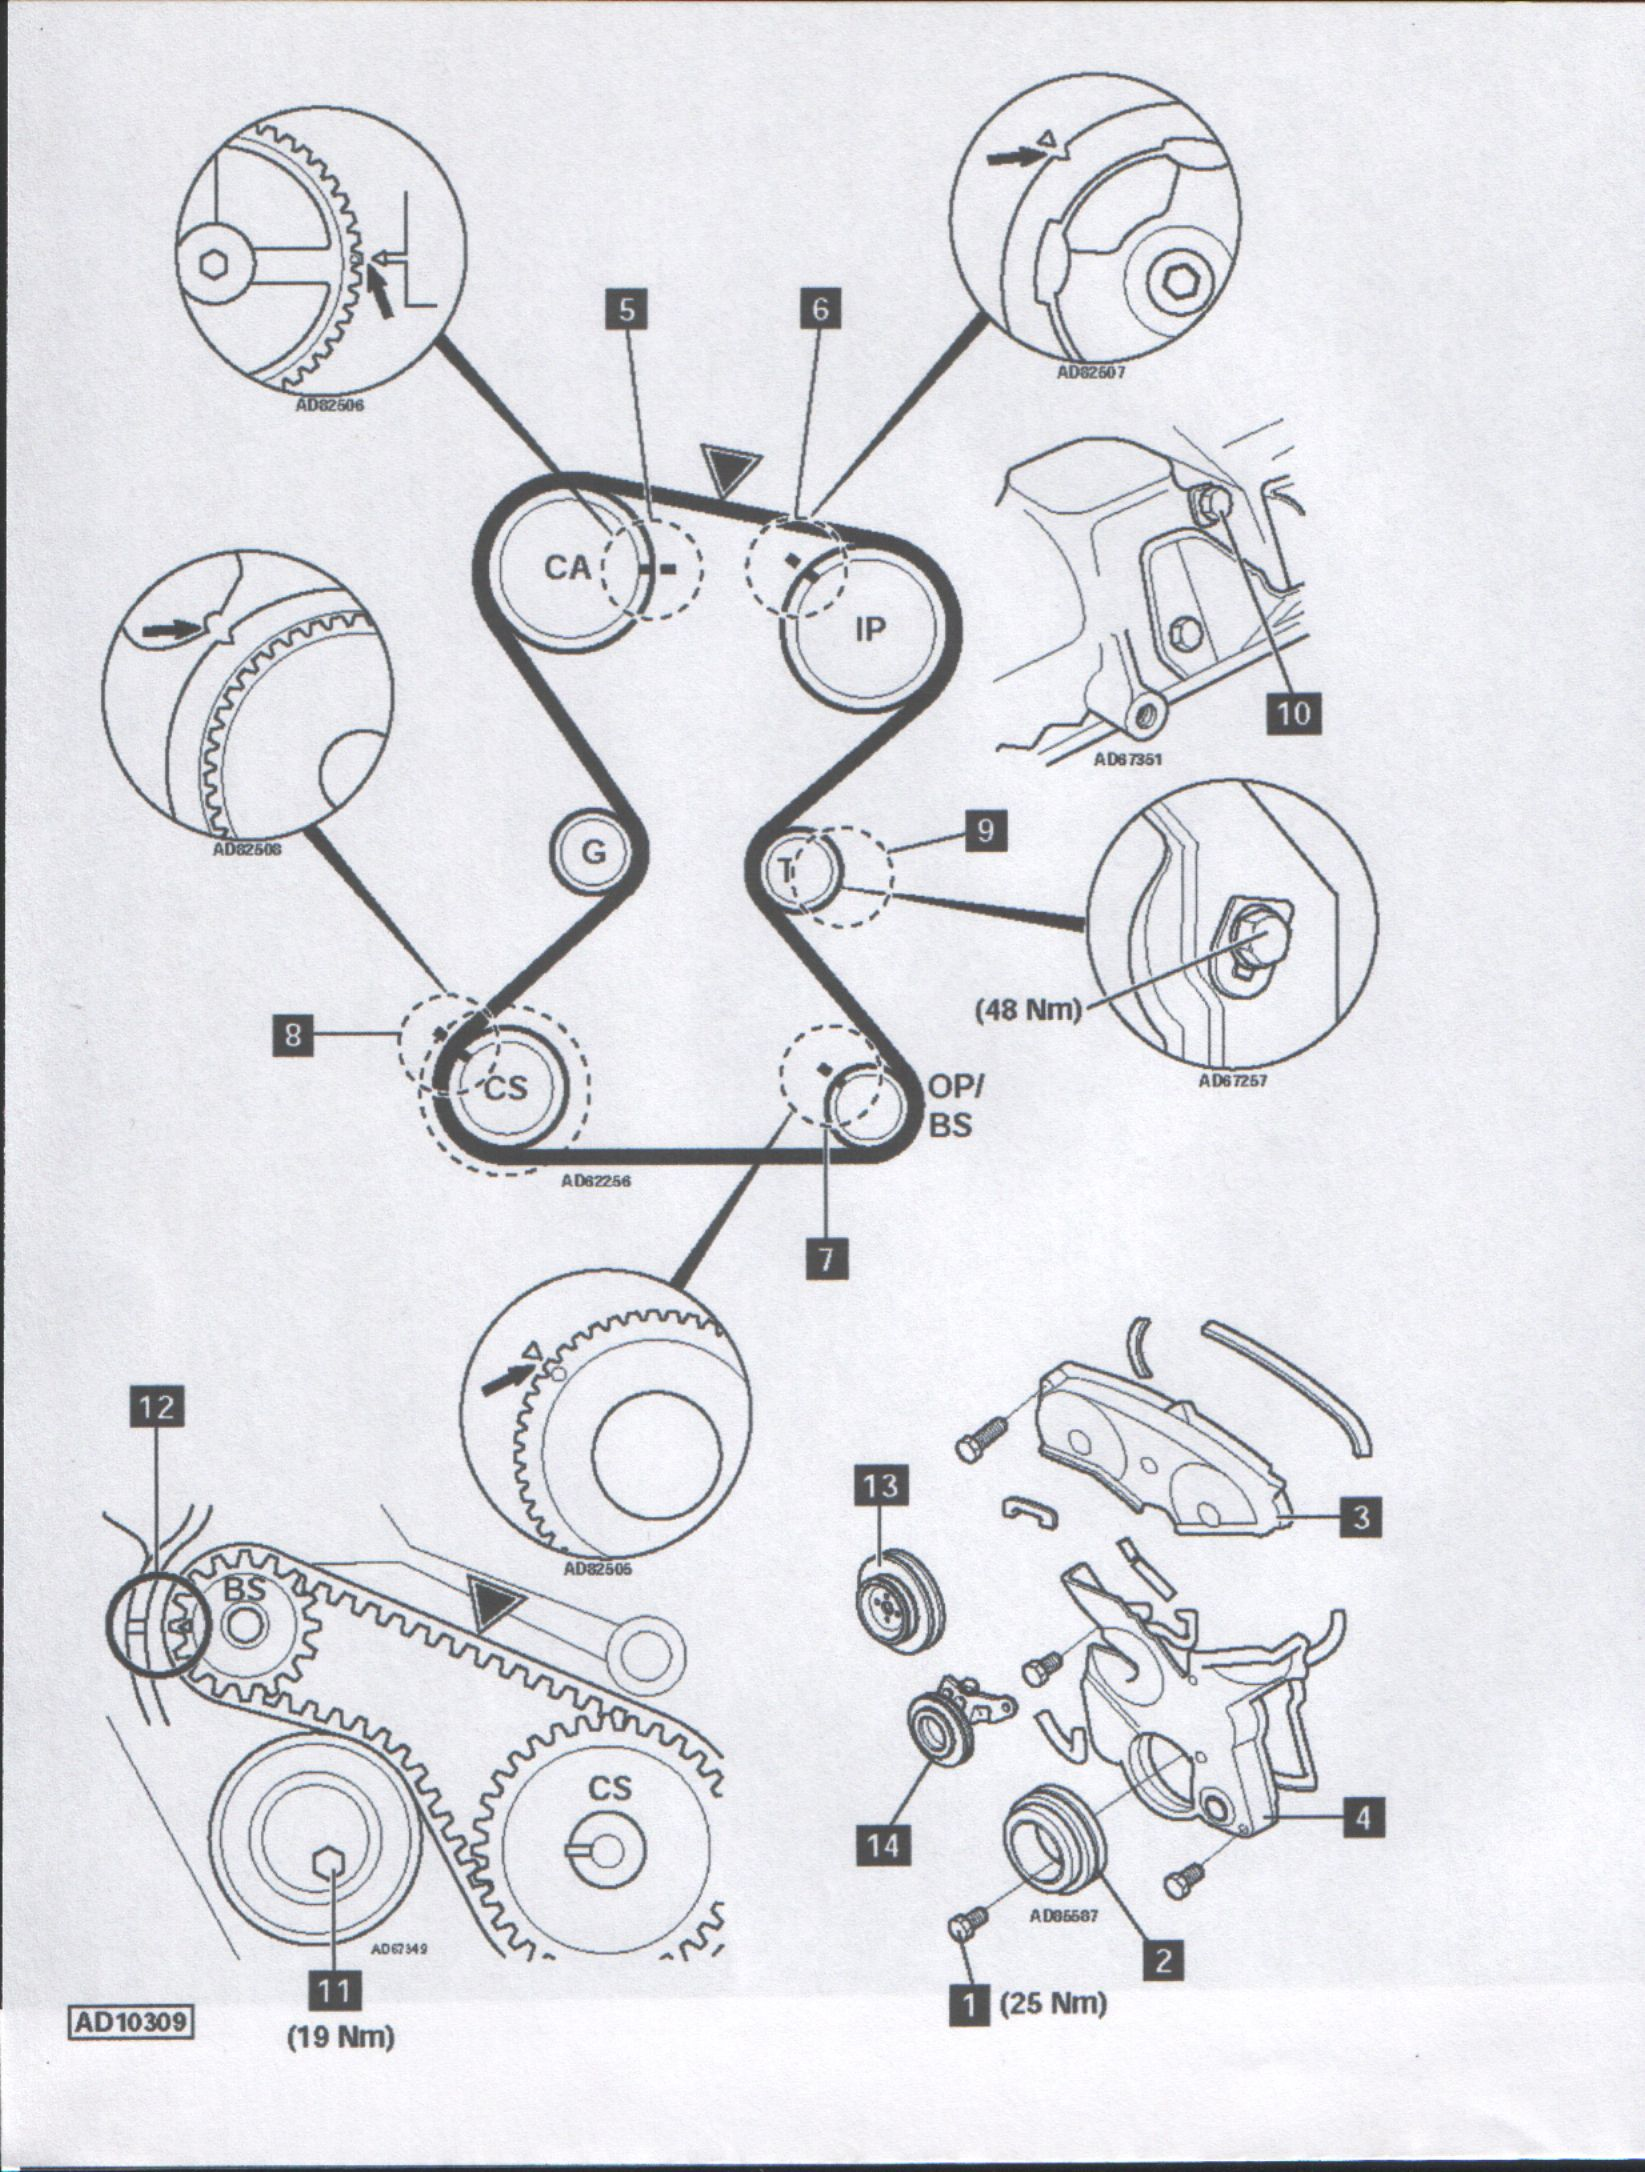 w3500 wiring diagram for 2001 amana electric dryer wiring 1998 Isuzu NPR Wiring-Diagram 2000 Isuzu NPR Wiring-Diagram